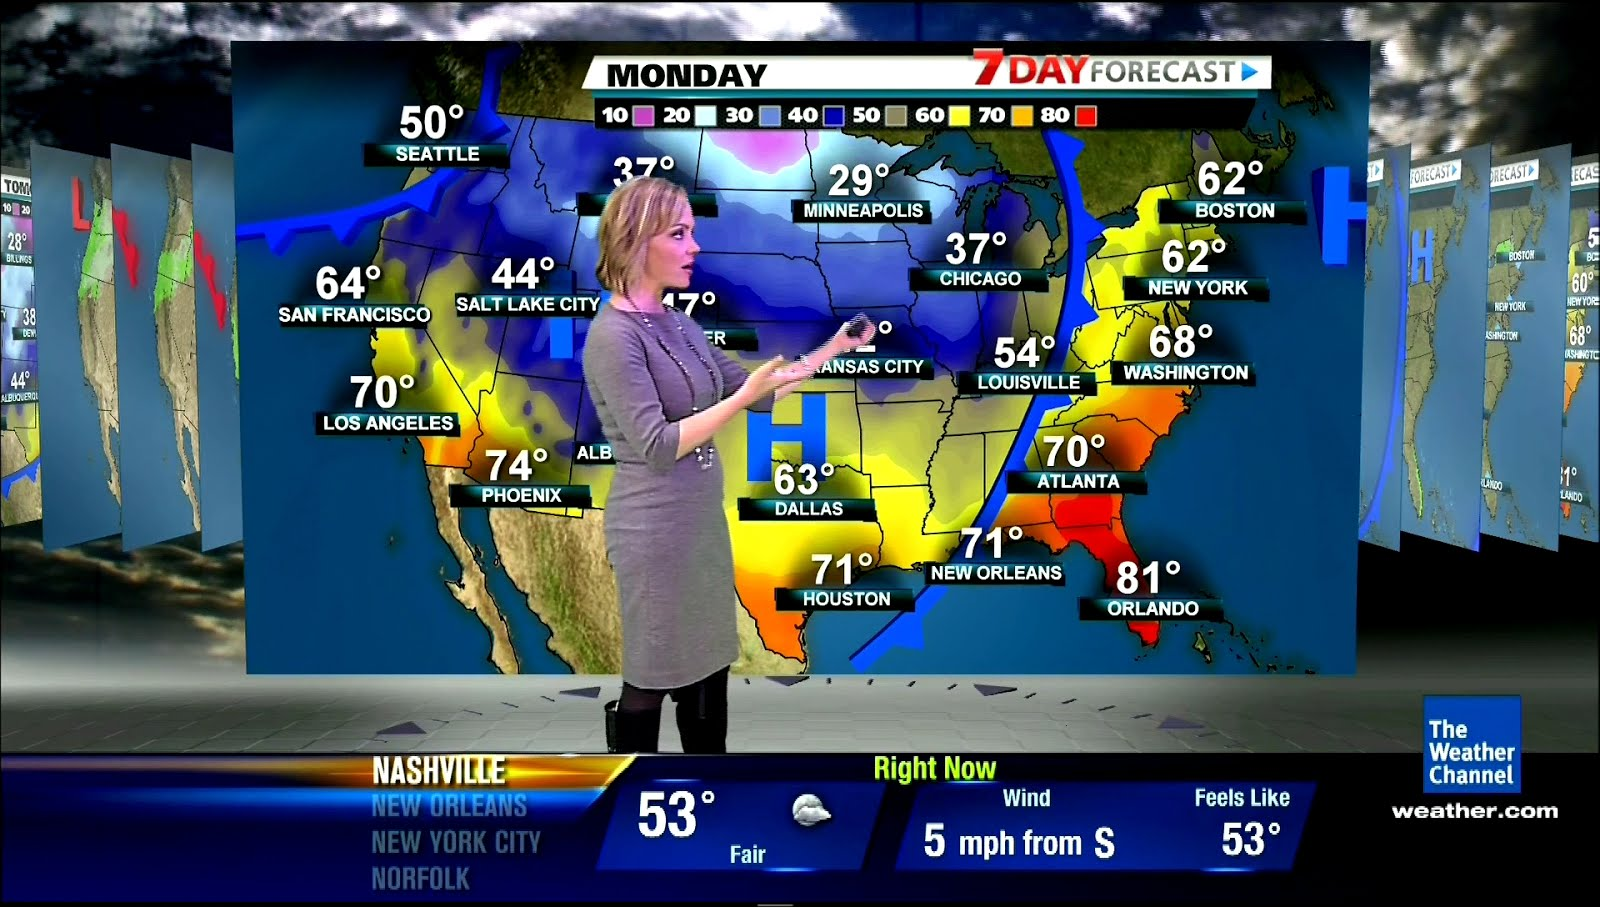 Channel 6 News Weather